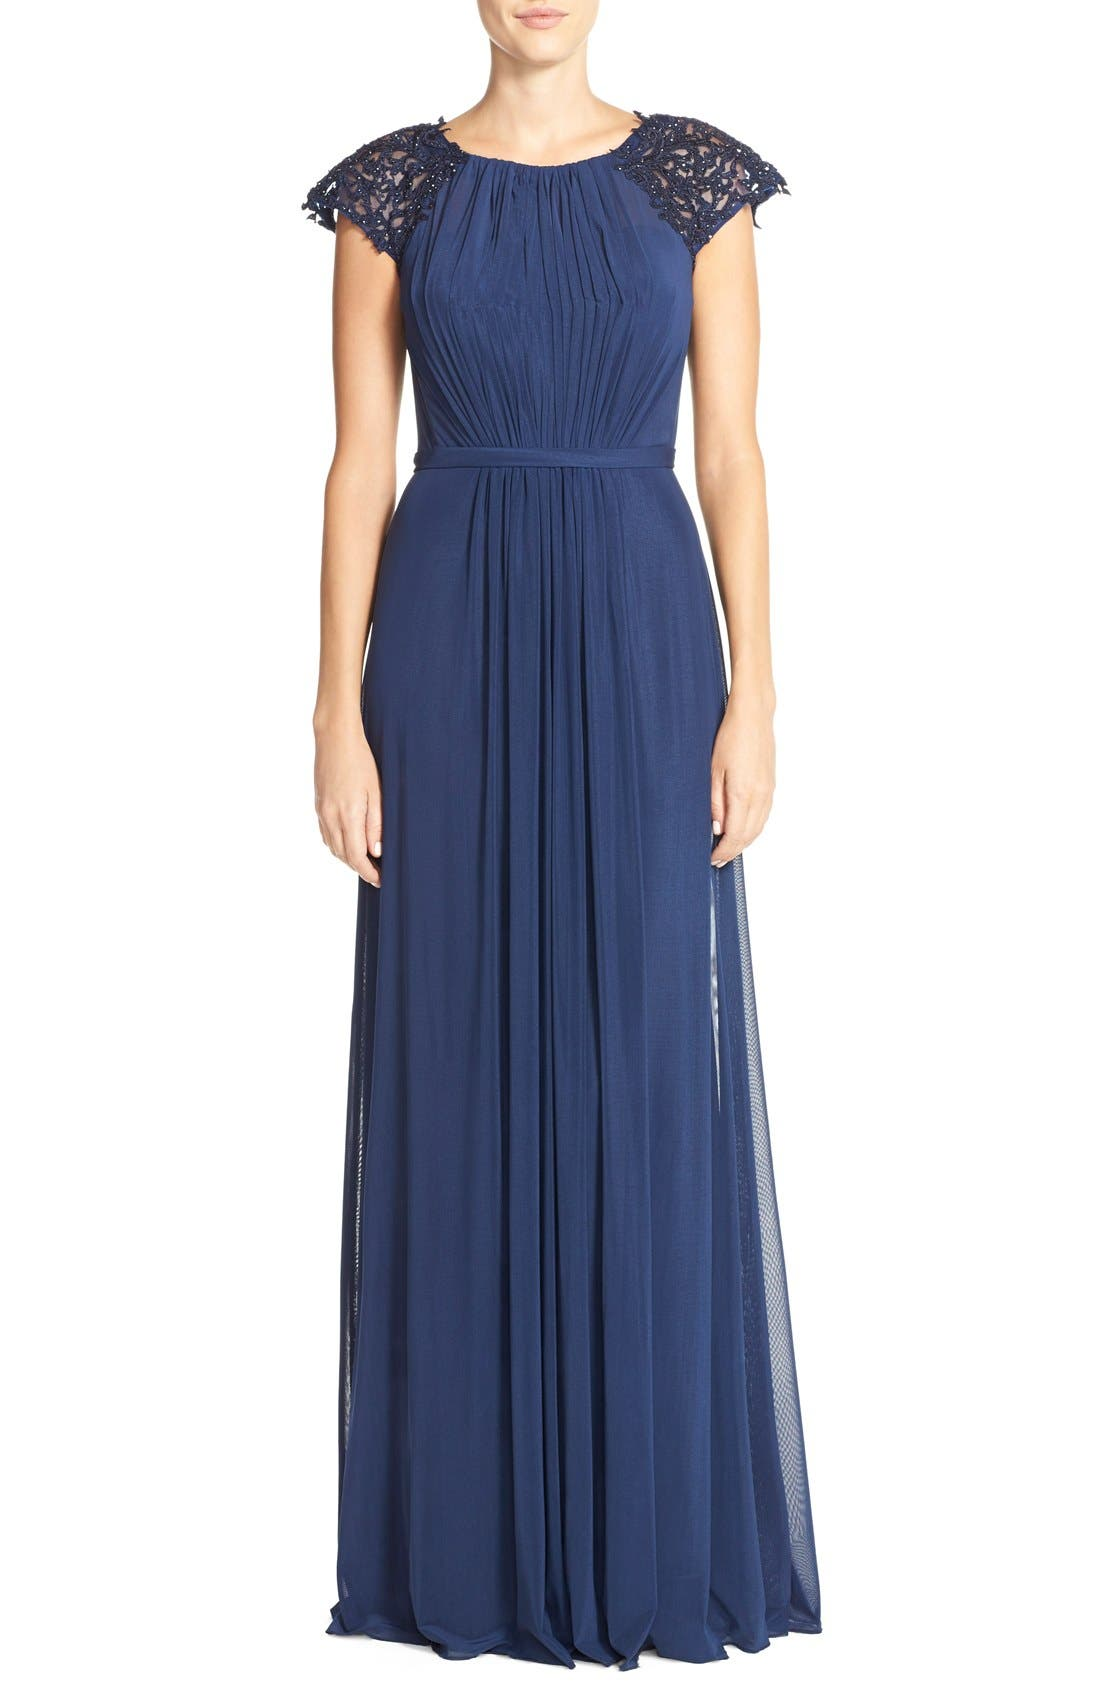 LA FEMME Embellished Gathered Net Jersey Gown